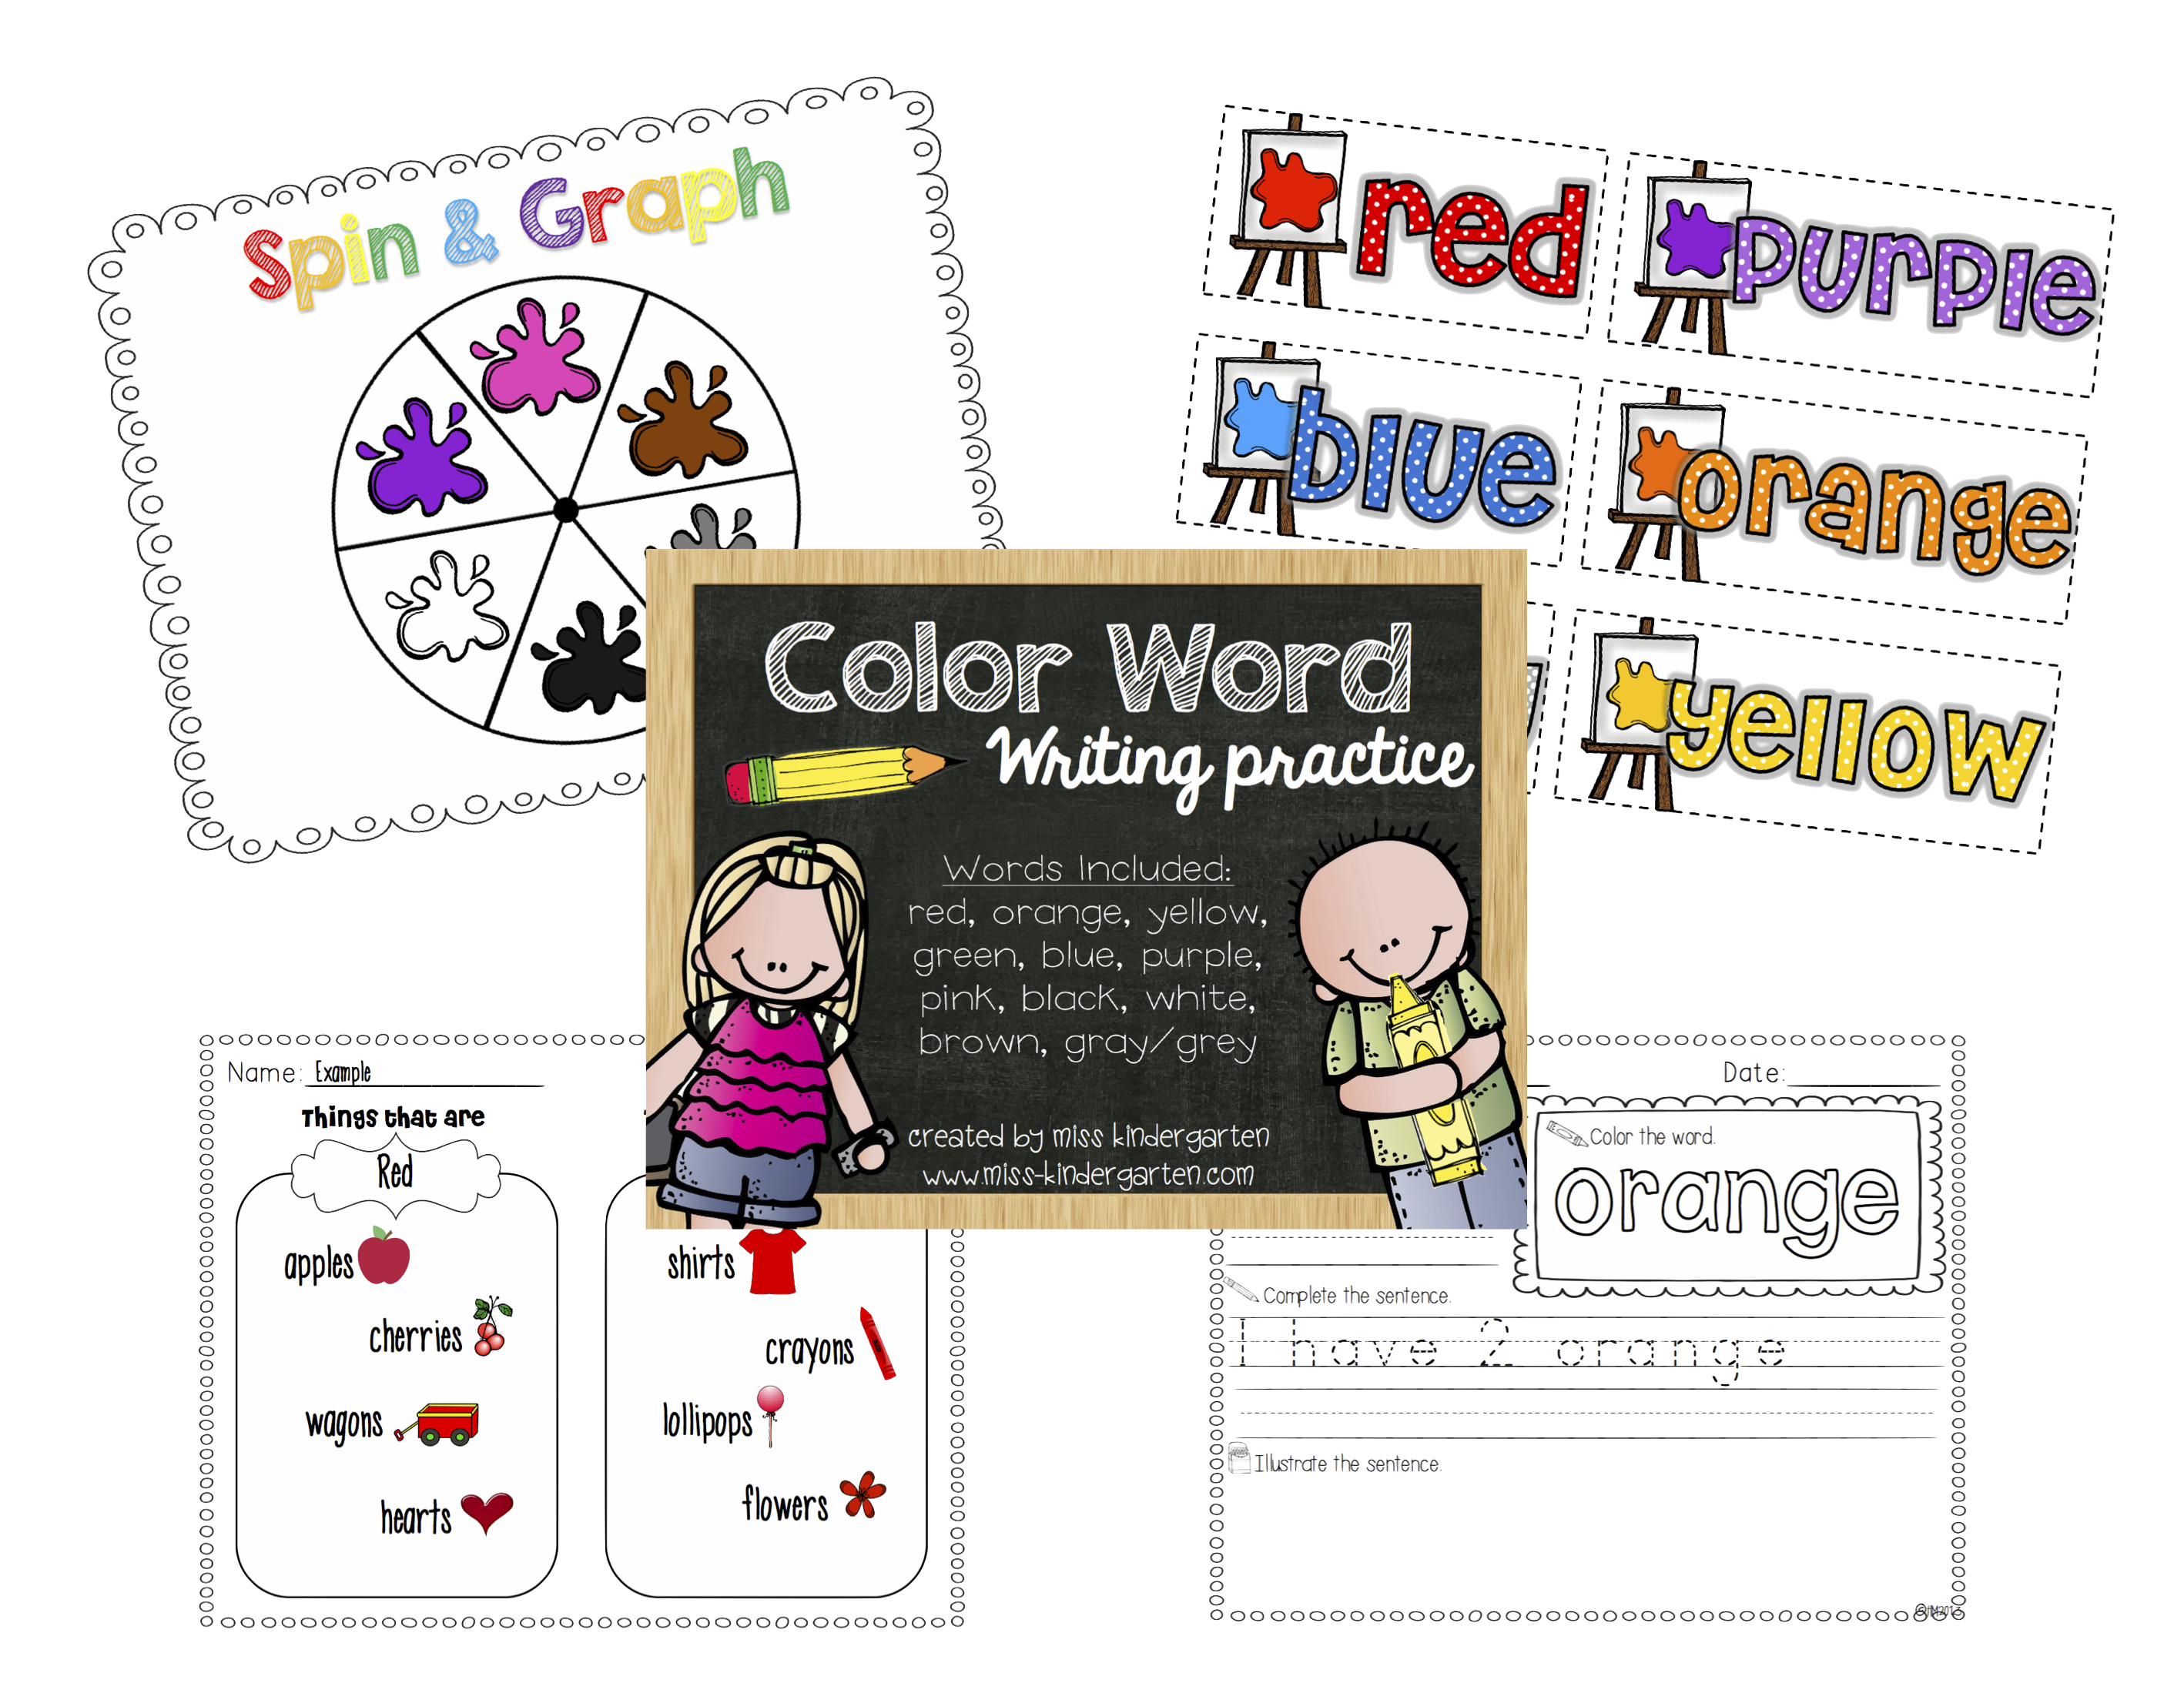 https://s3-us-west-1.amazonaws.com/educents/new+folder/kinder.png